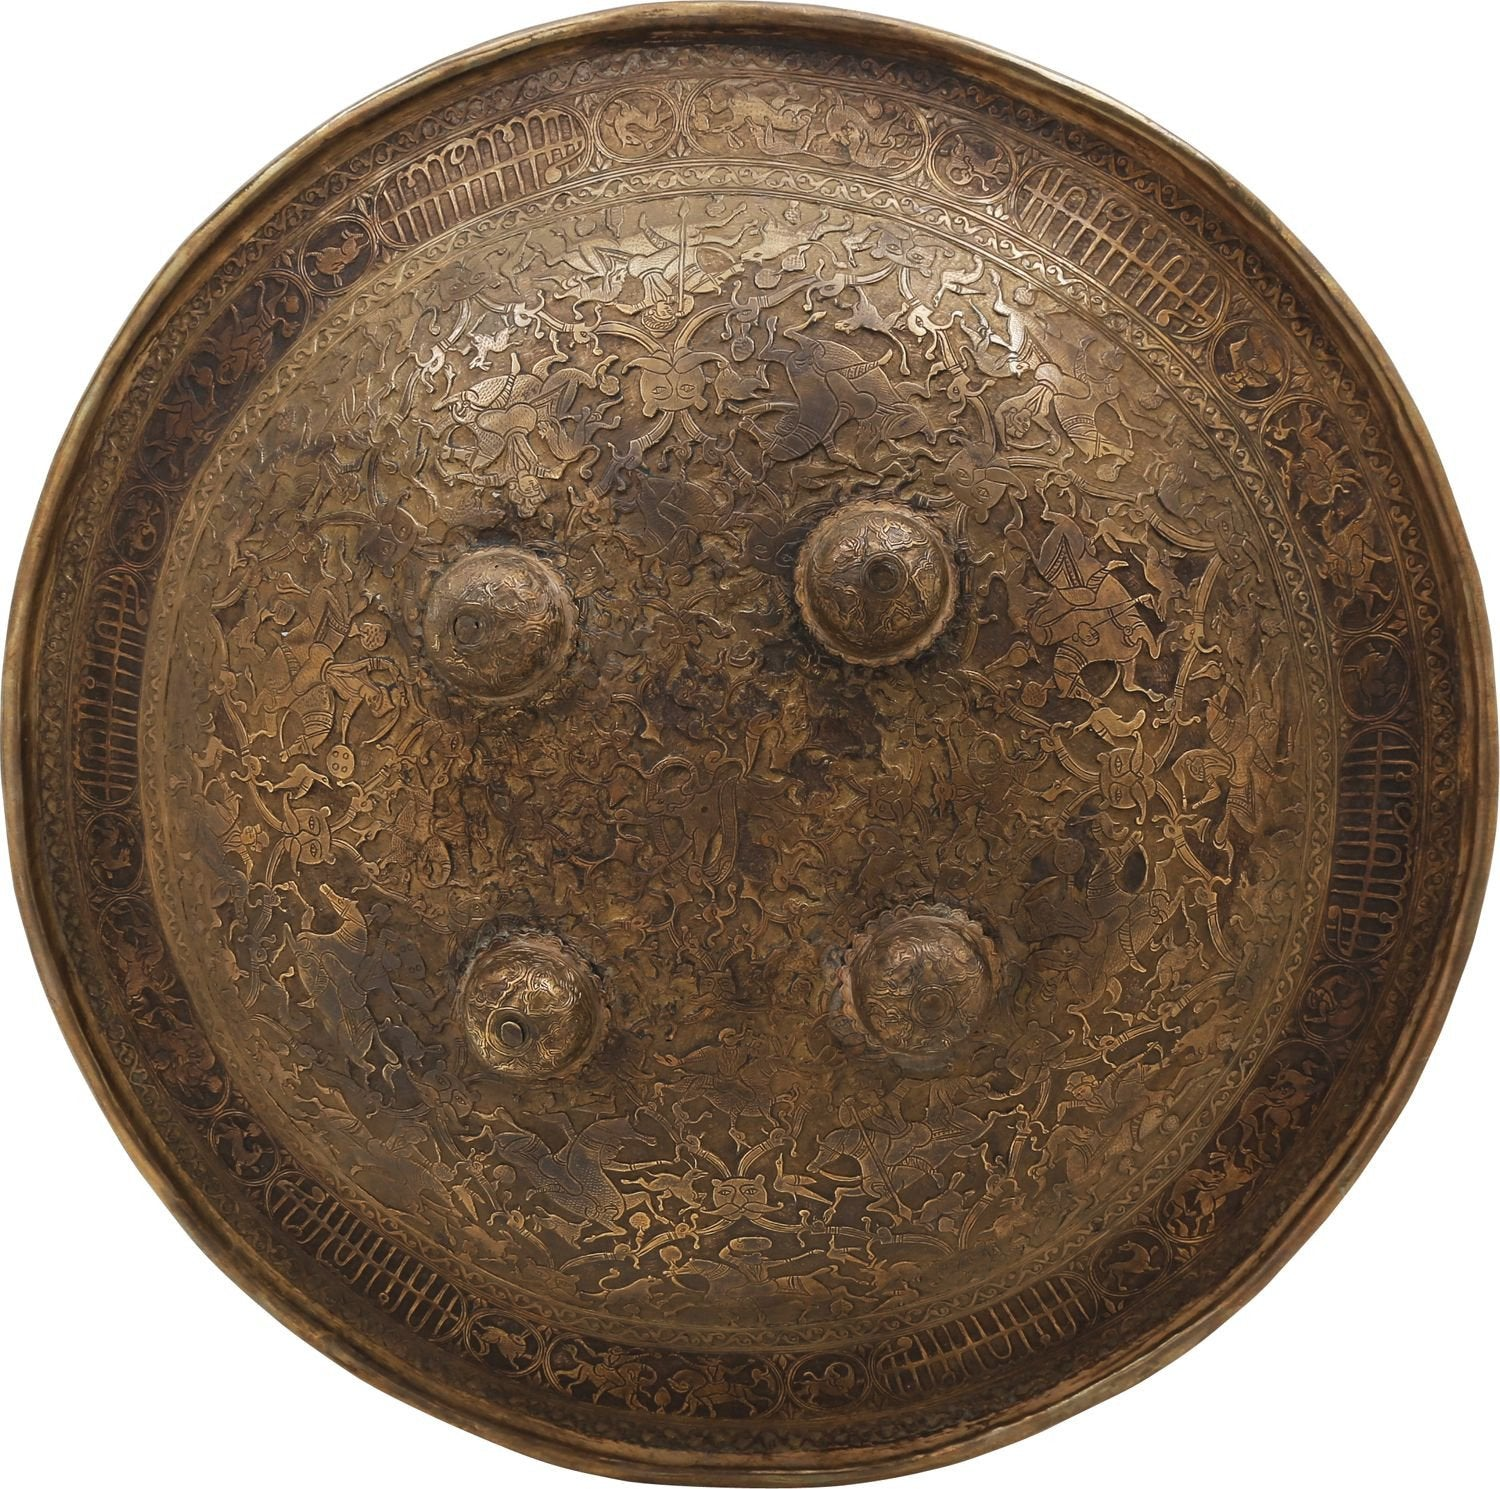 Rare Indopersian Decorated Brass Shield - Product